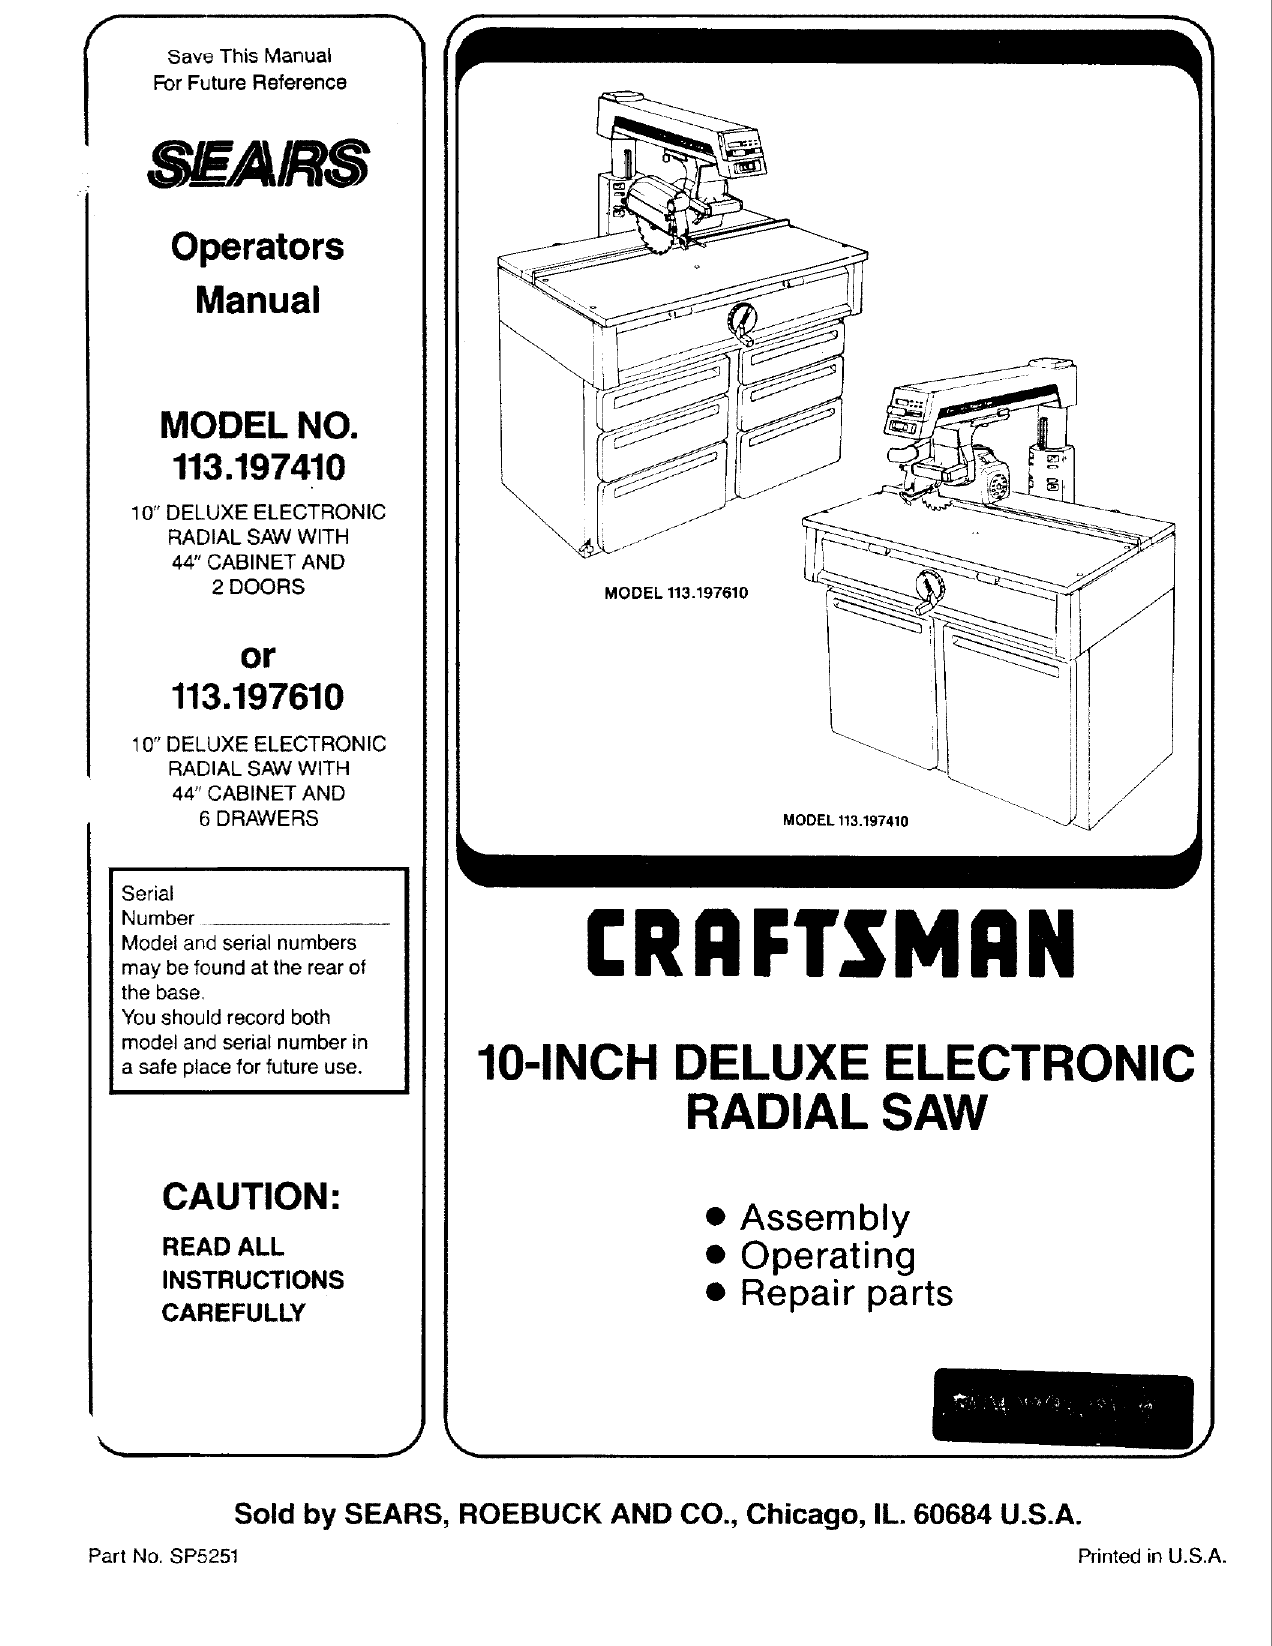 Craftsman User Manual Radial Arm Saw Manuals And